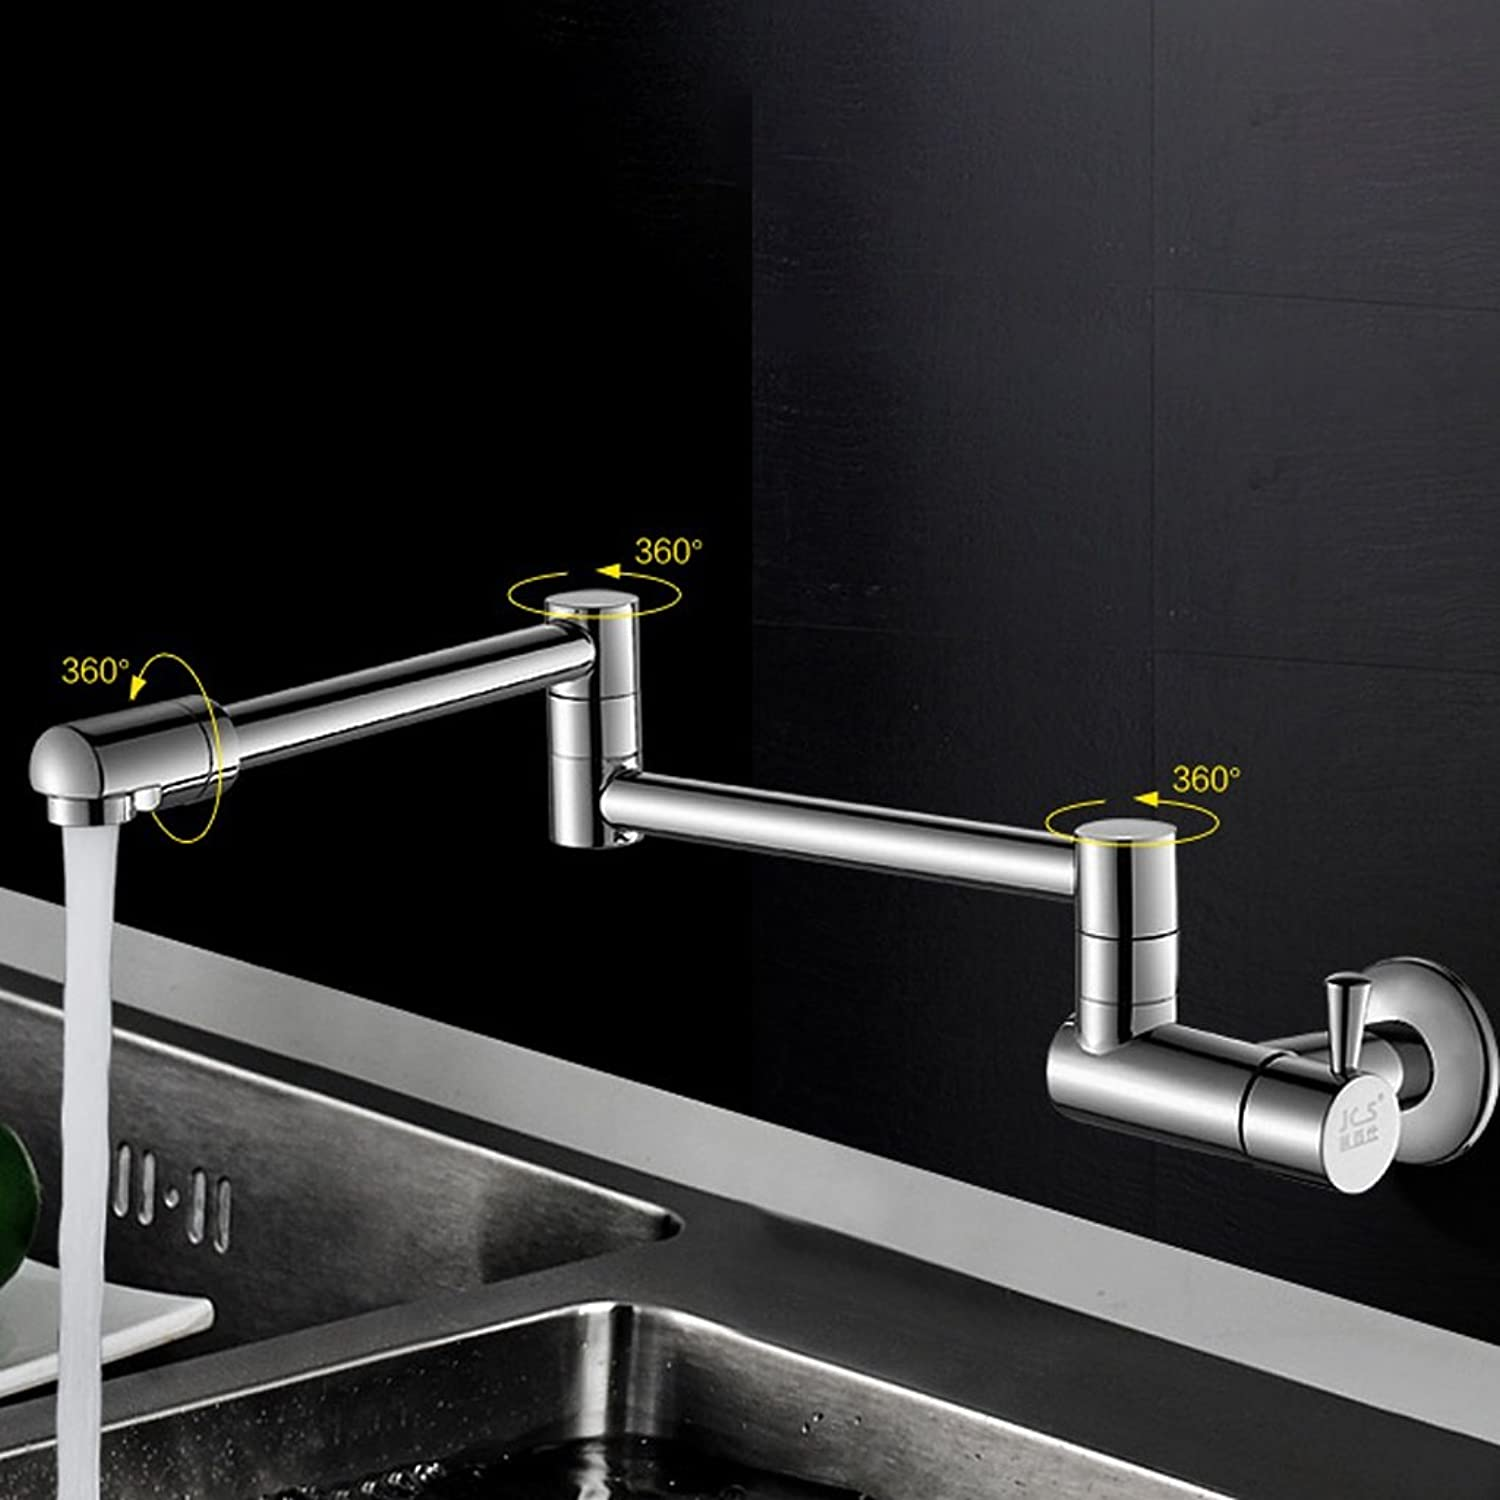 MEILING Full Copper Into The Wall Of A Single Cold Kitchen Faucet Sink Telescopic redating Faucet Folding Lengthened